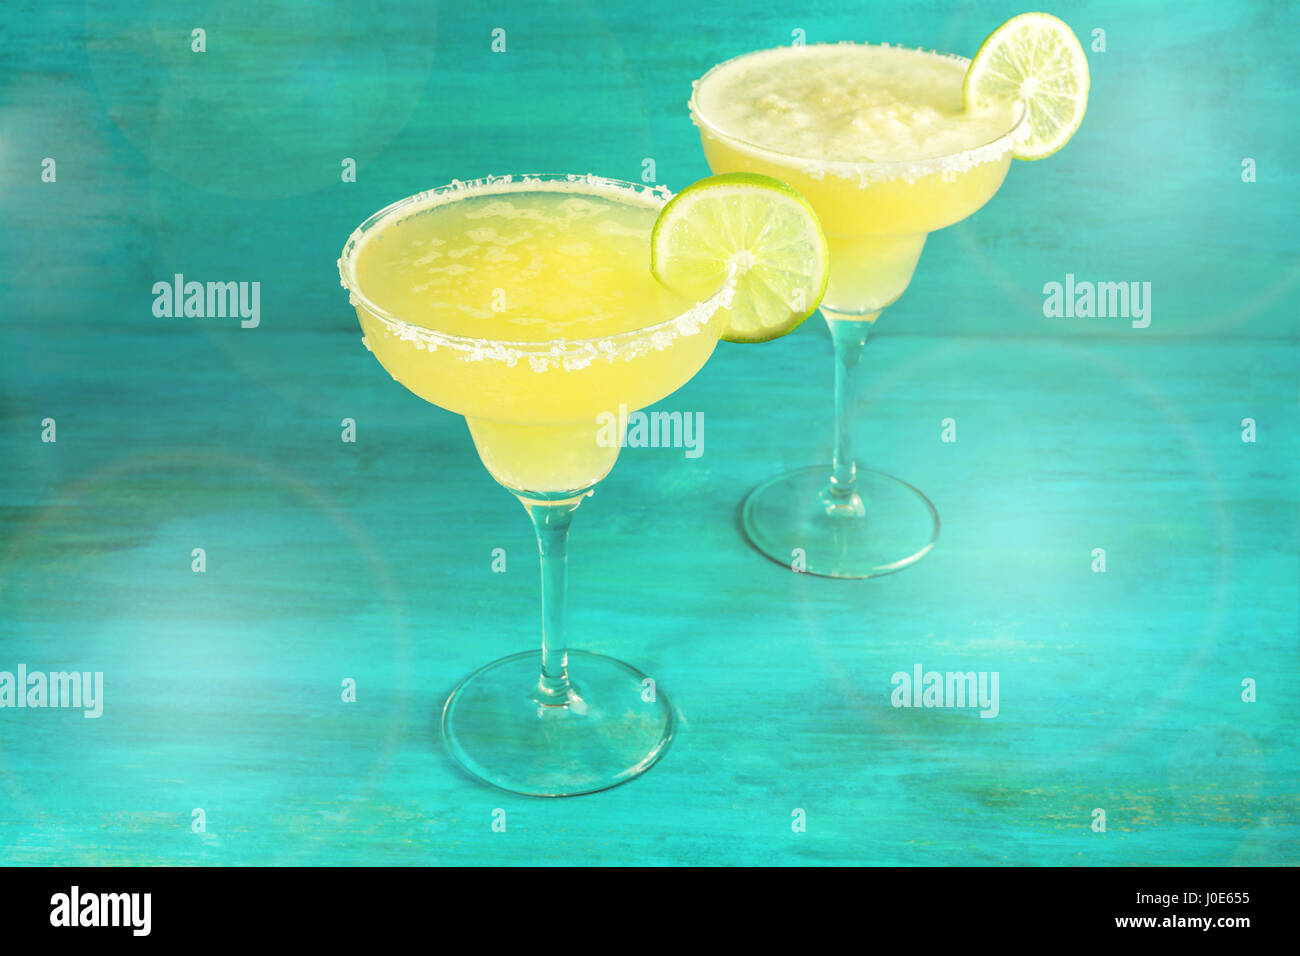 Lemon Margarita cocktails on vibrant teal with copyspace - Stock Image